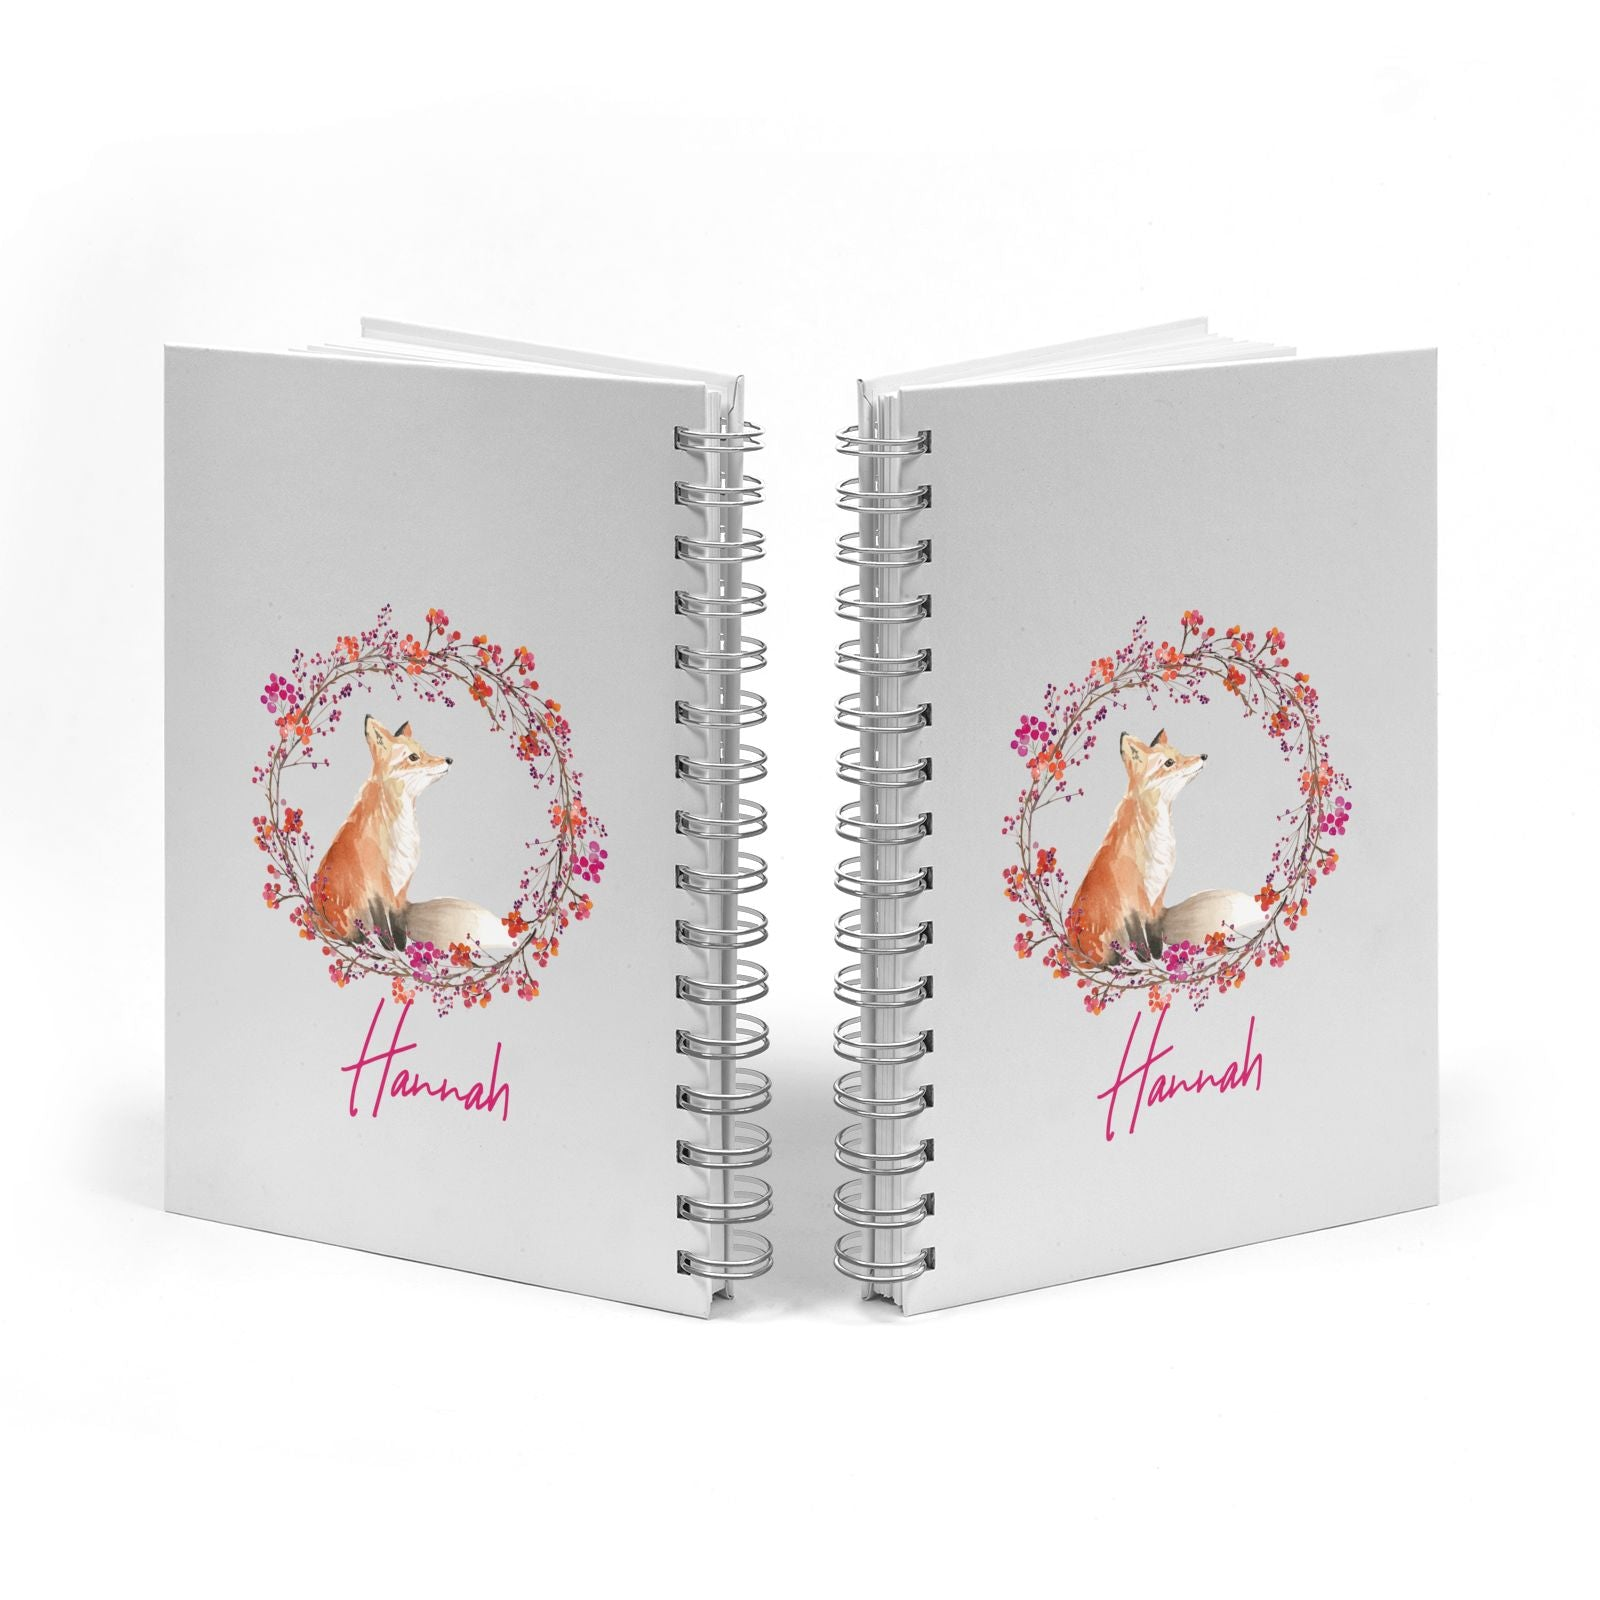 Personalised Fox Christmas Wreath Notebook with Silver Coil Spine View